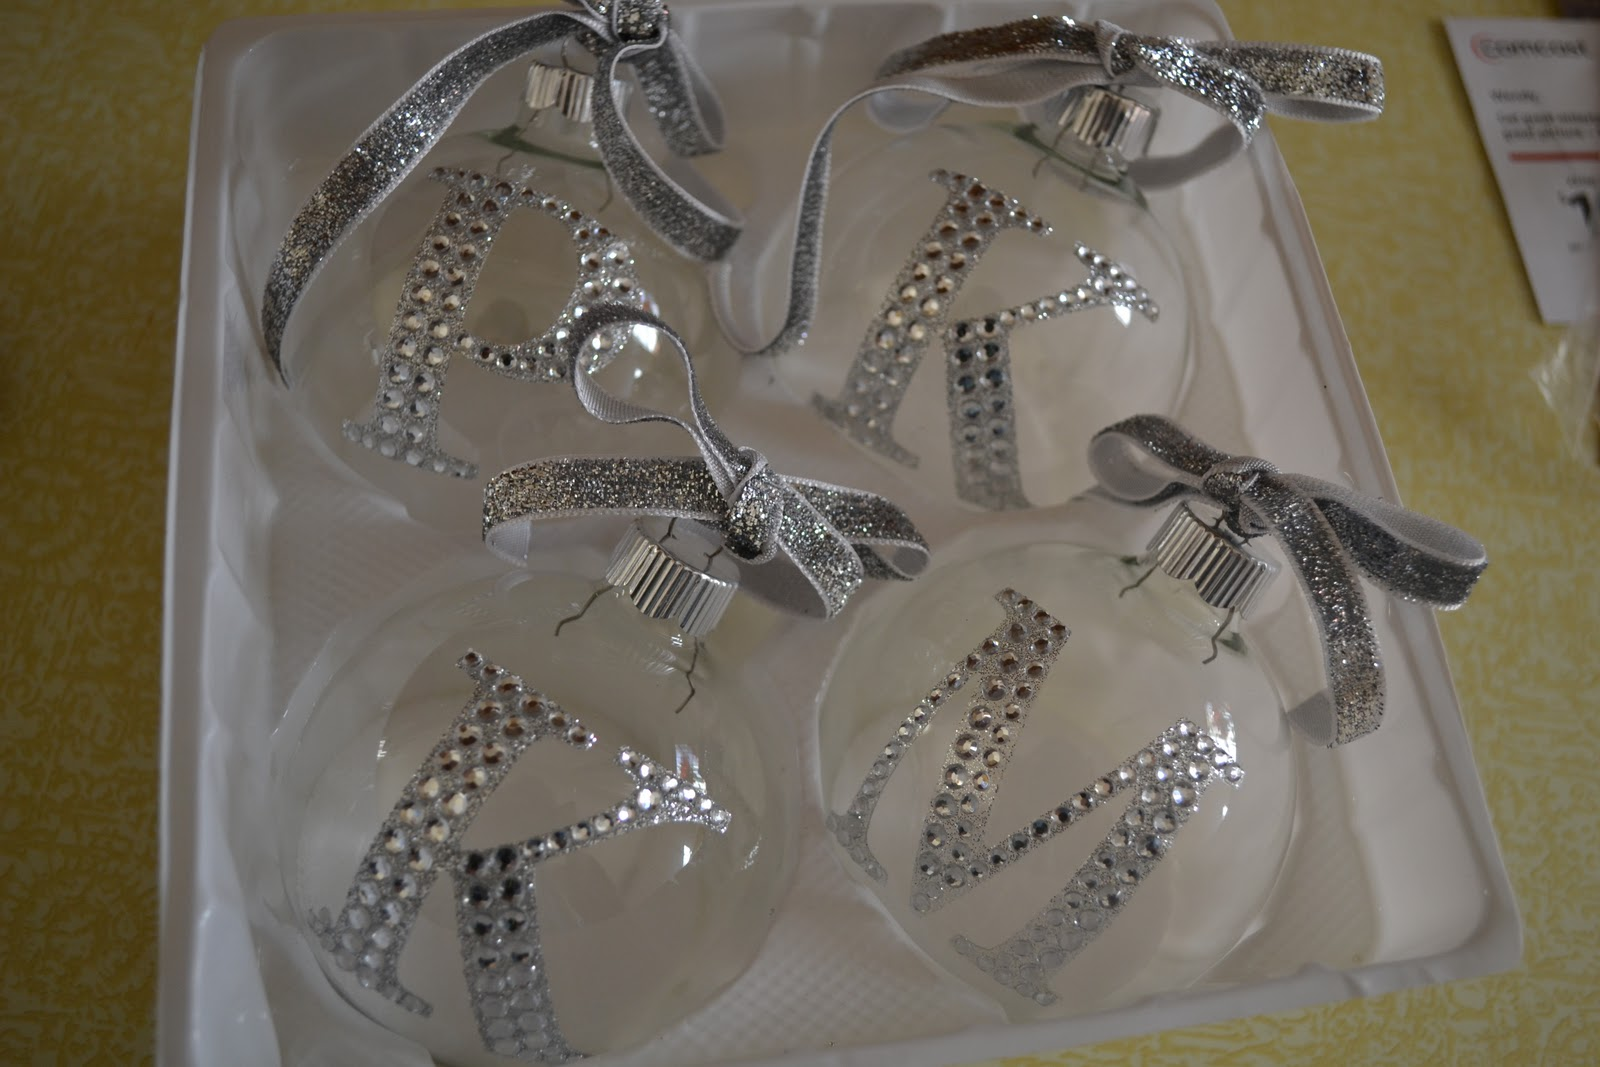 Hobby lobby glass ornaments - I Found Everything I Needed To Make These At Hobby Lobby And It Really Was Simple